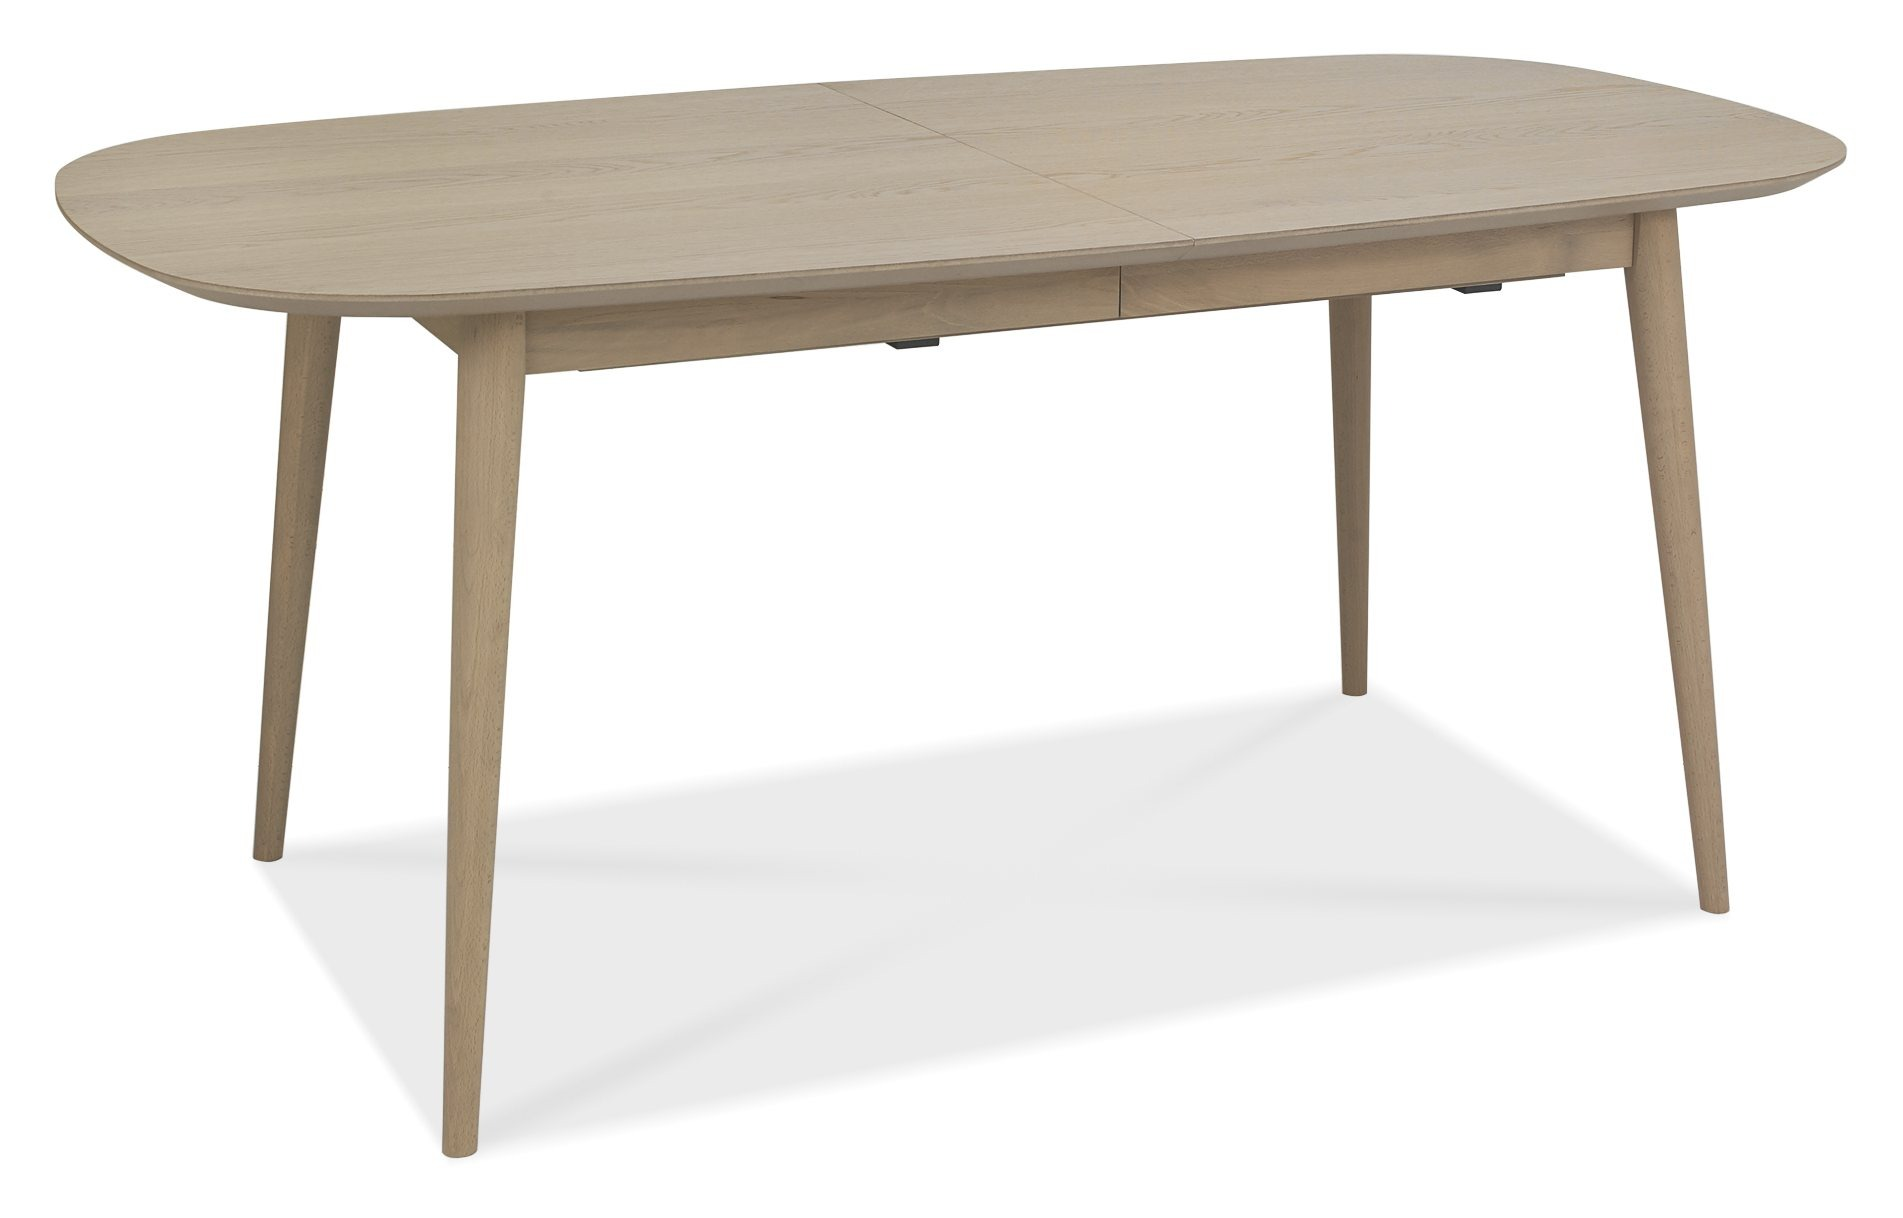 RETRO DINING TABLE 6-8 SEATER CLOSED CLOSED L175cm x D90cm x H77cm